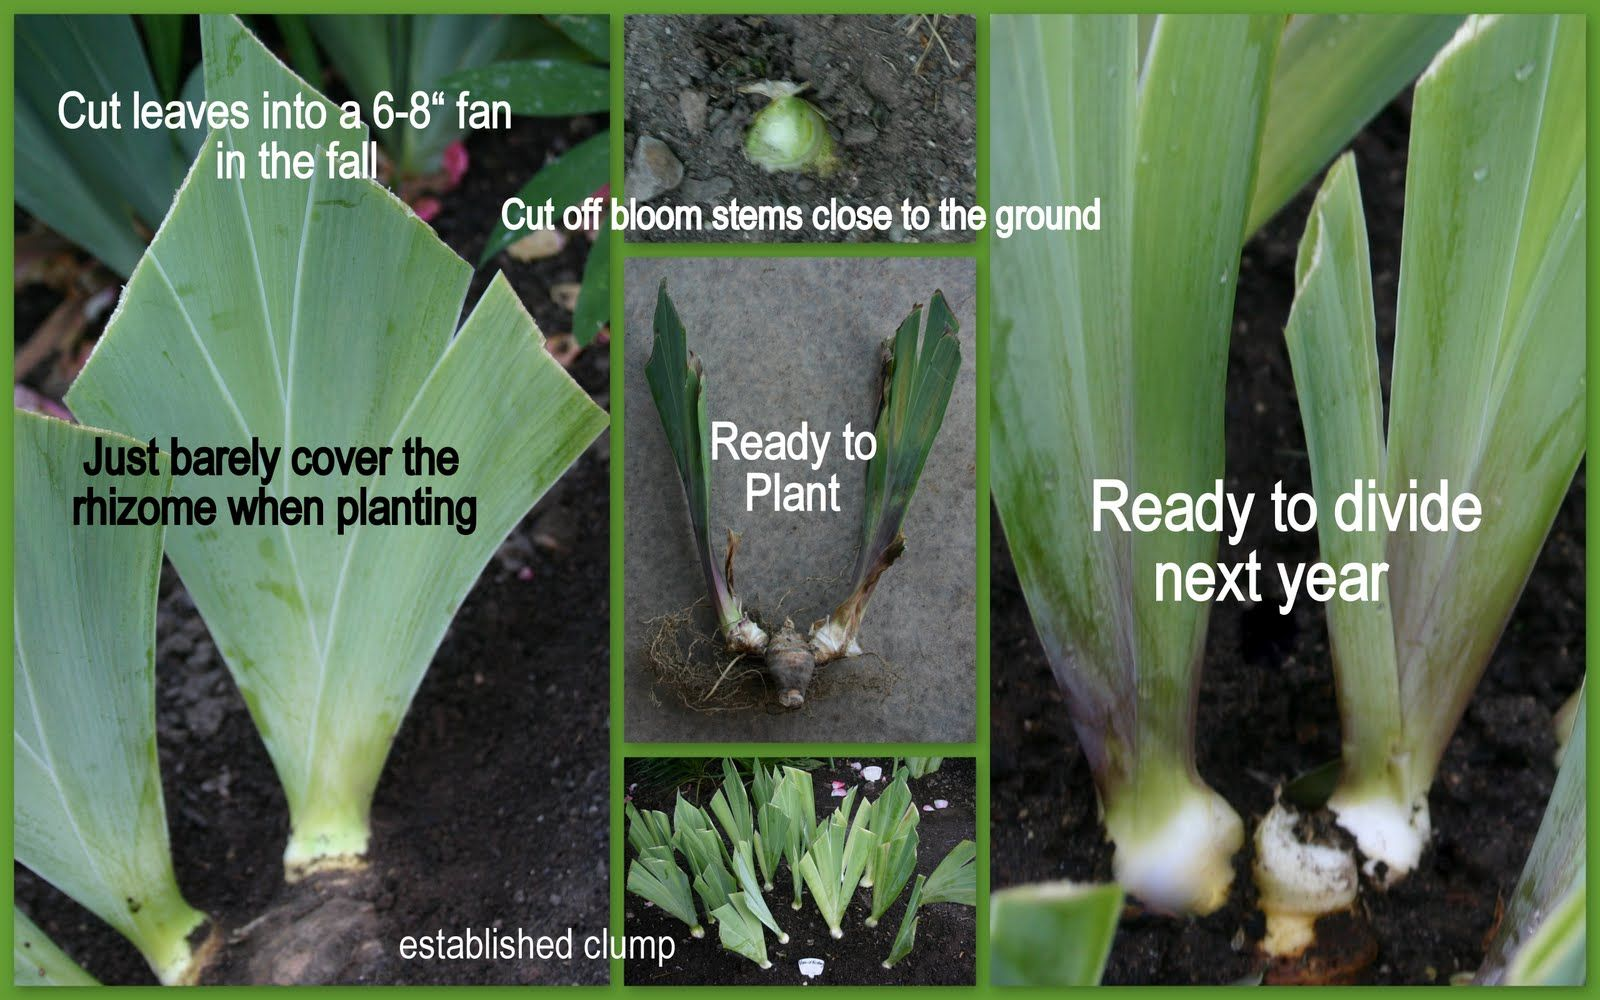 When To Plant Iris The Time To Plant Or Divide Tall Bearded Iris Iris Flowers Garden Growing Irises Plants